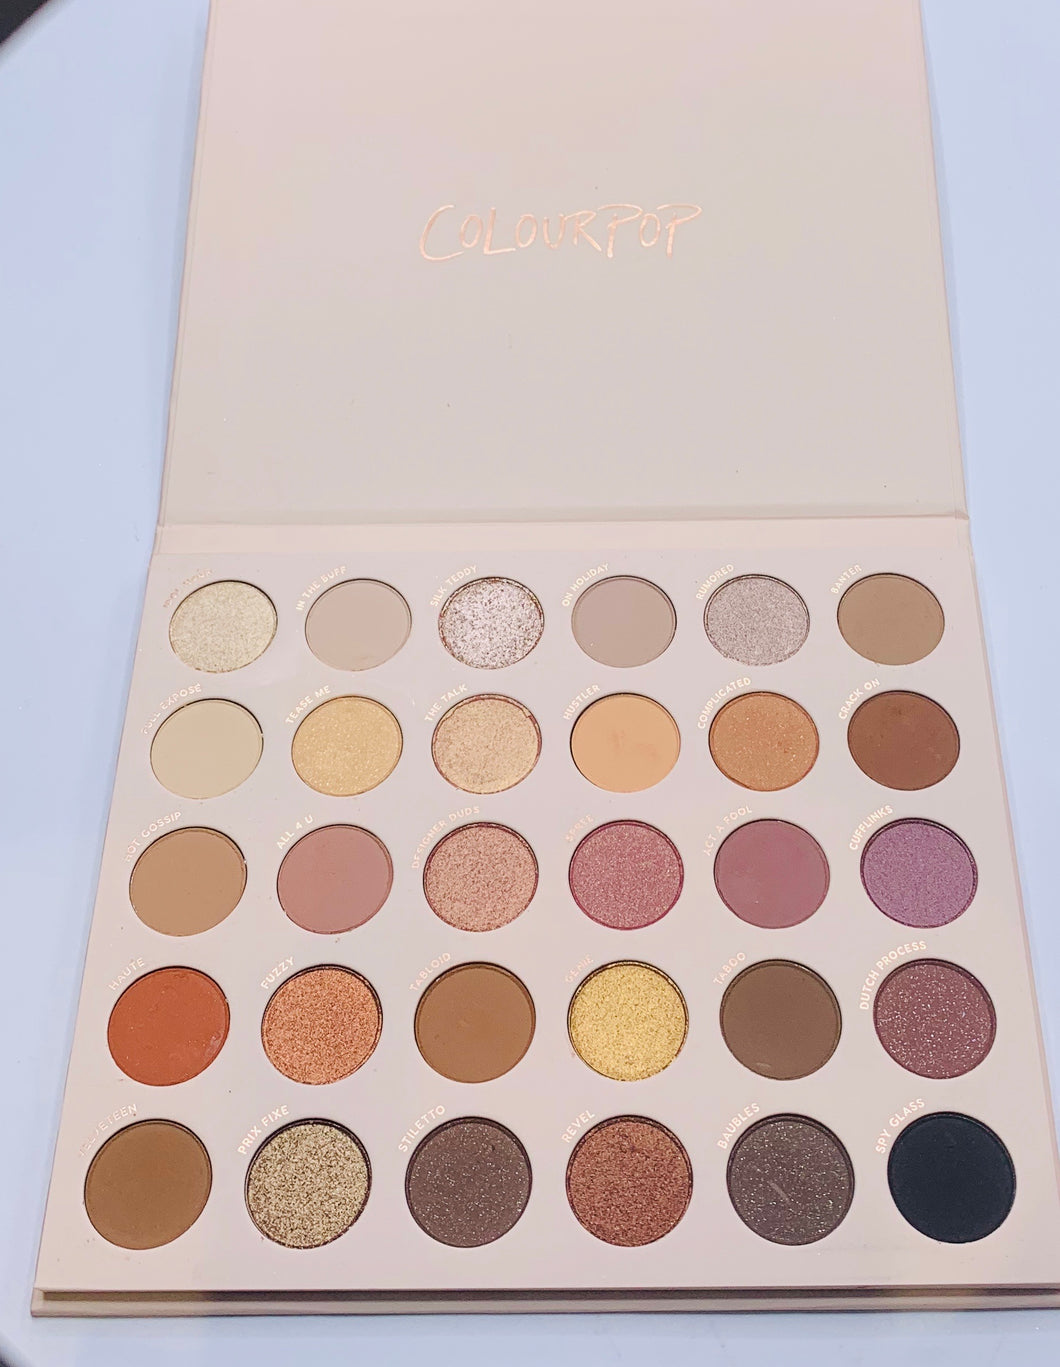 Colourpop Bare Necessities Eyeshadow Palette